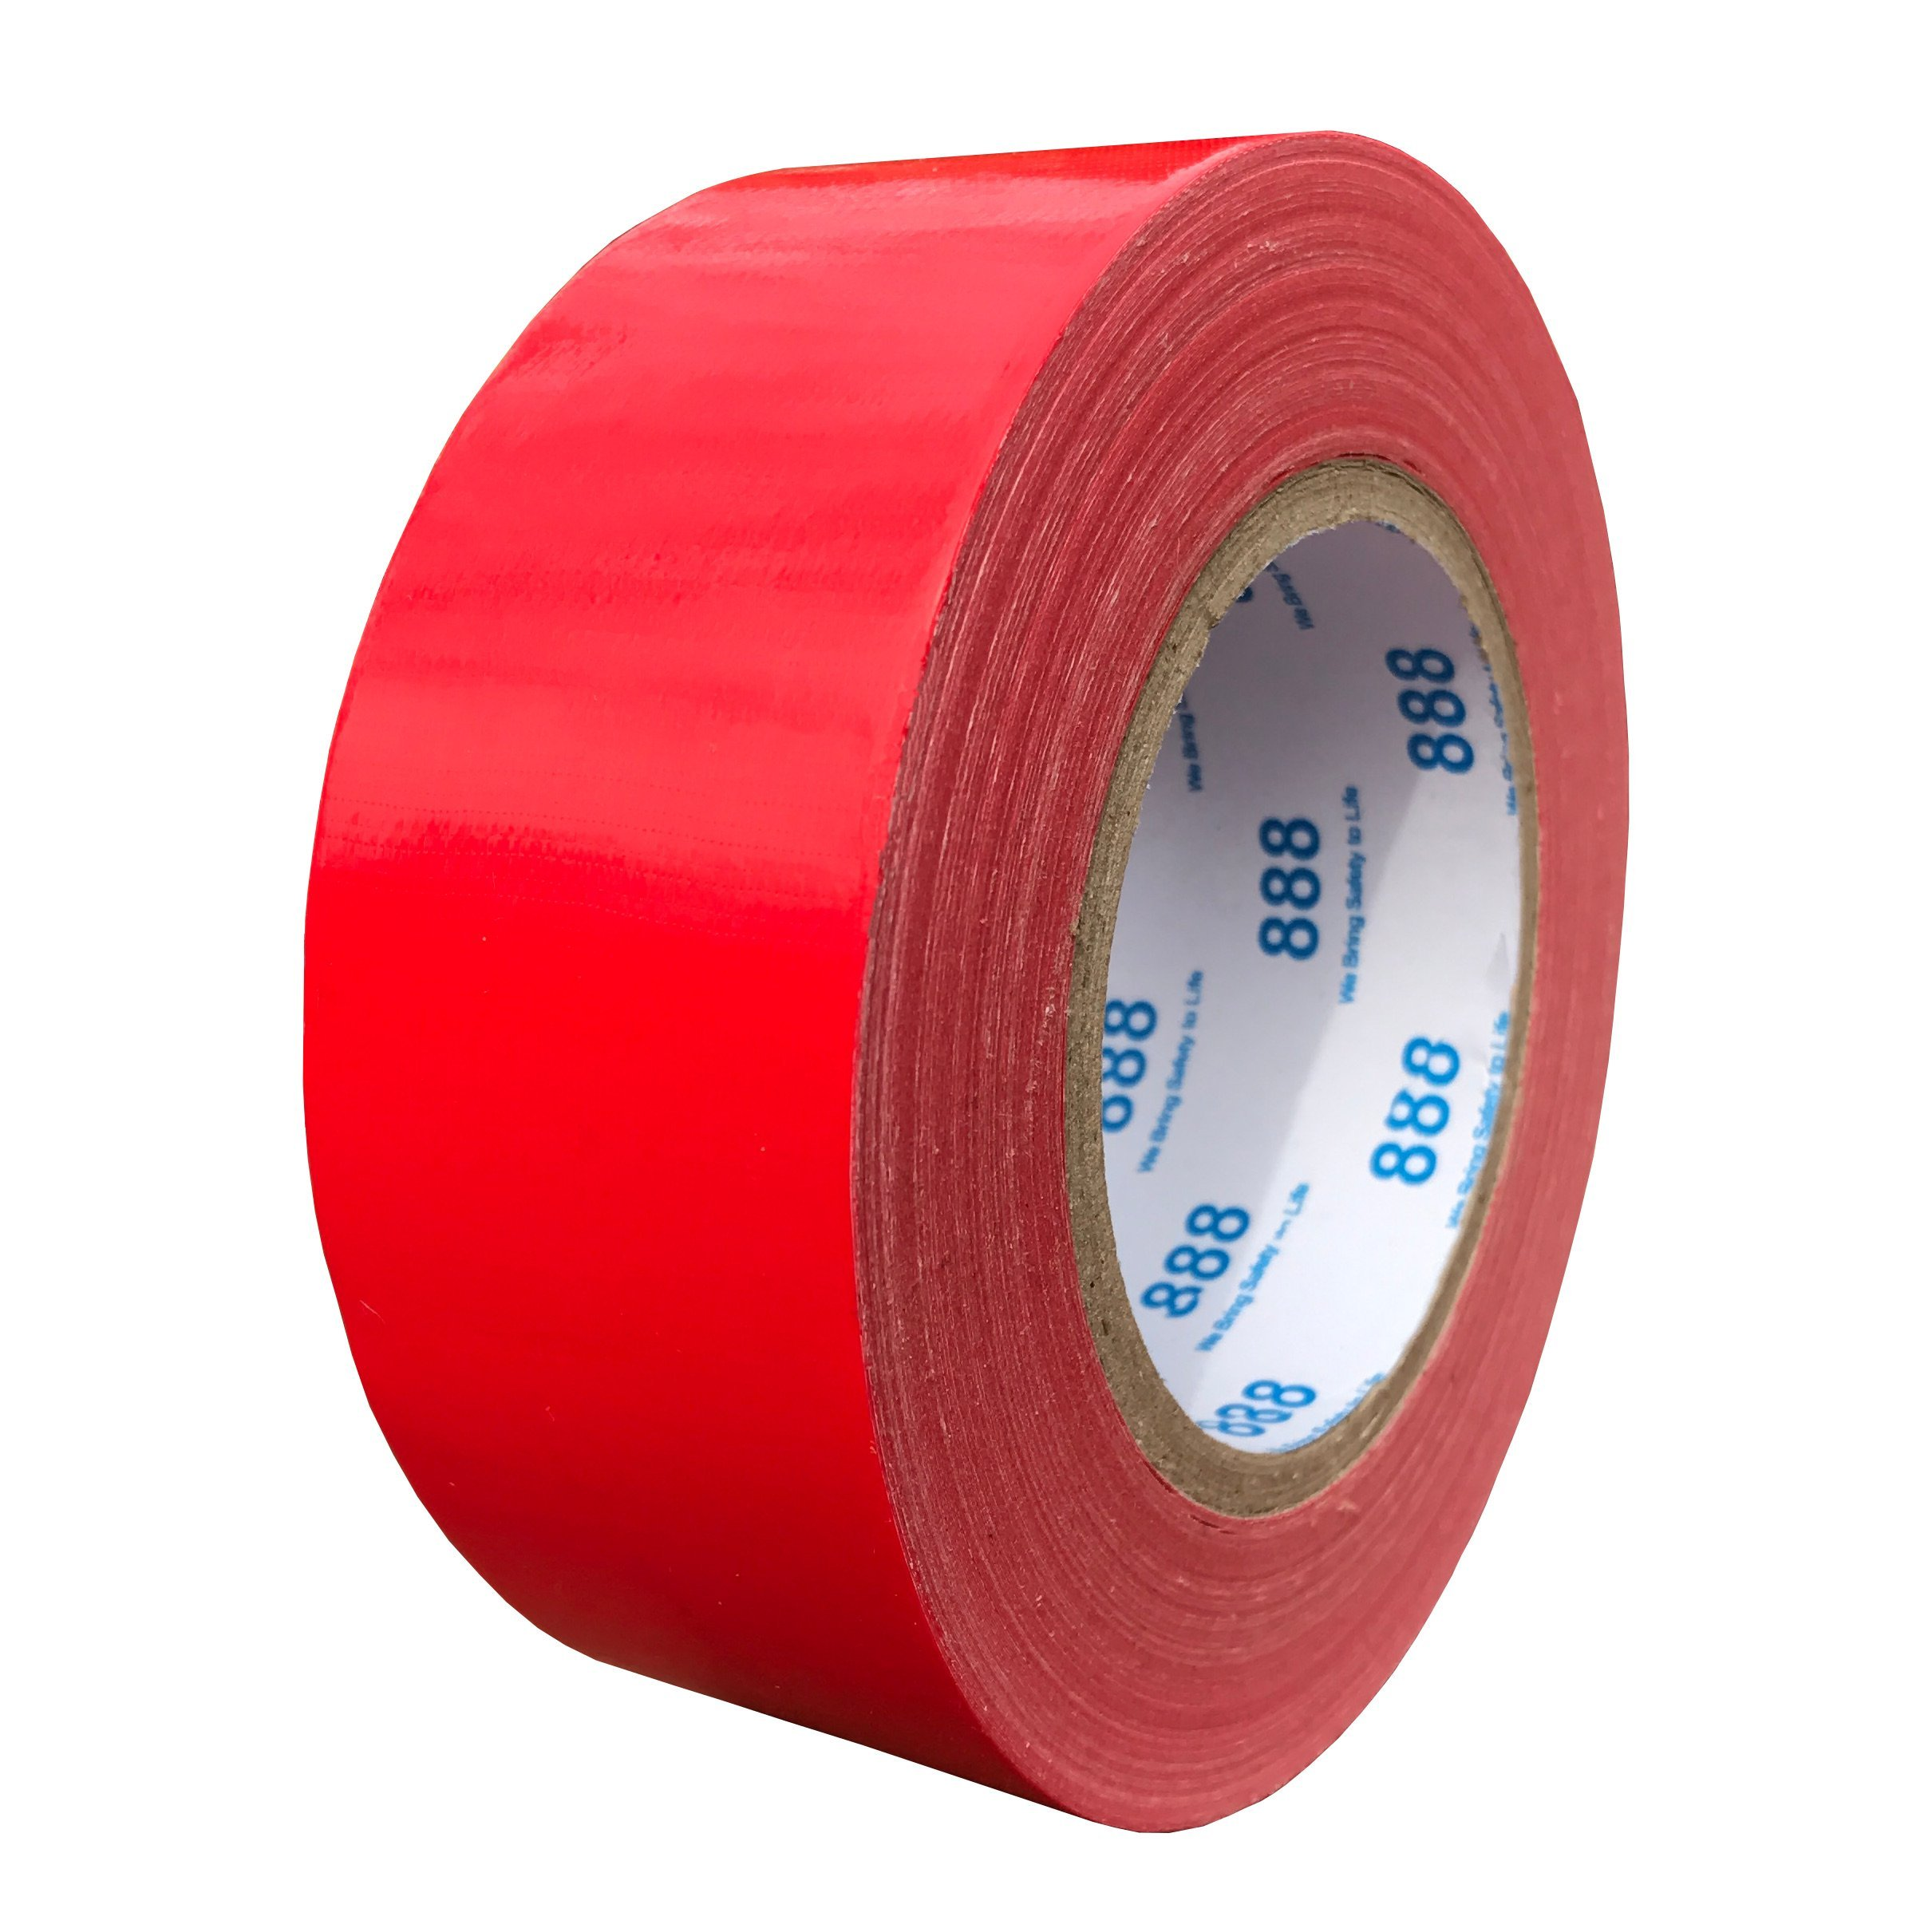 MG888 Red Colored Duct Tape 1.88 Inches x 60 Yards, Duct Tape for Crafts, DIY, Repairs, Indoor Outdoor Use